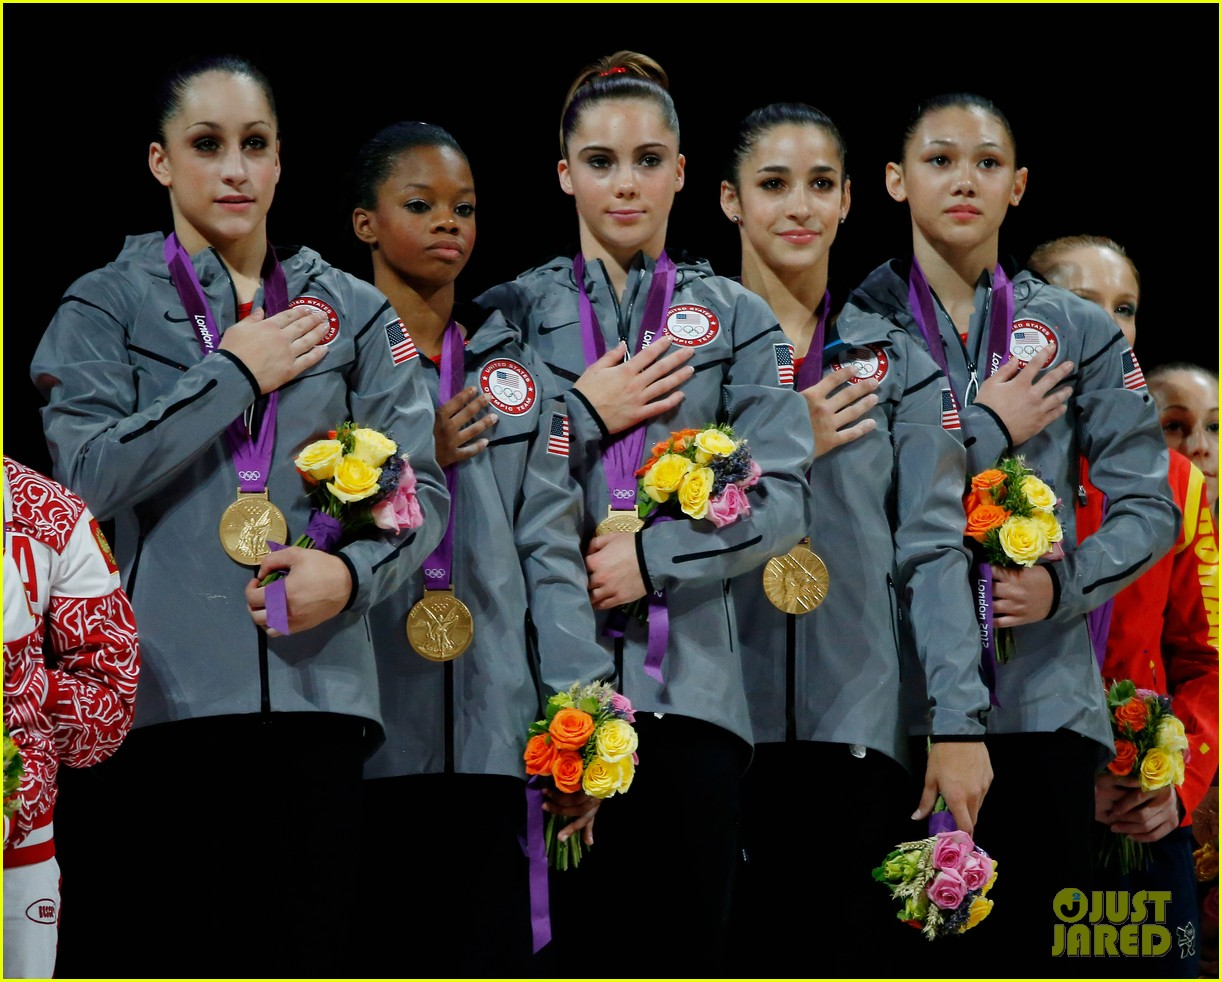 Women's Gymnastics Team Wins Gold Medal!